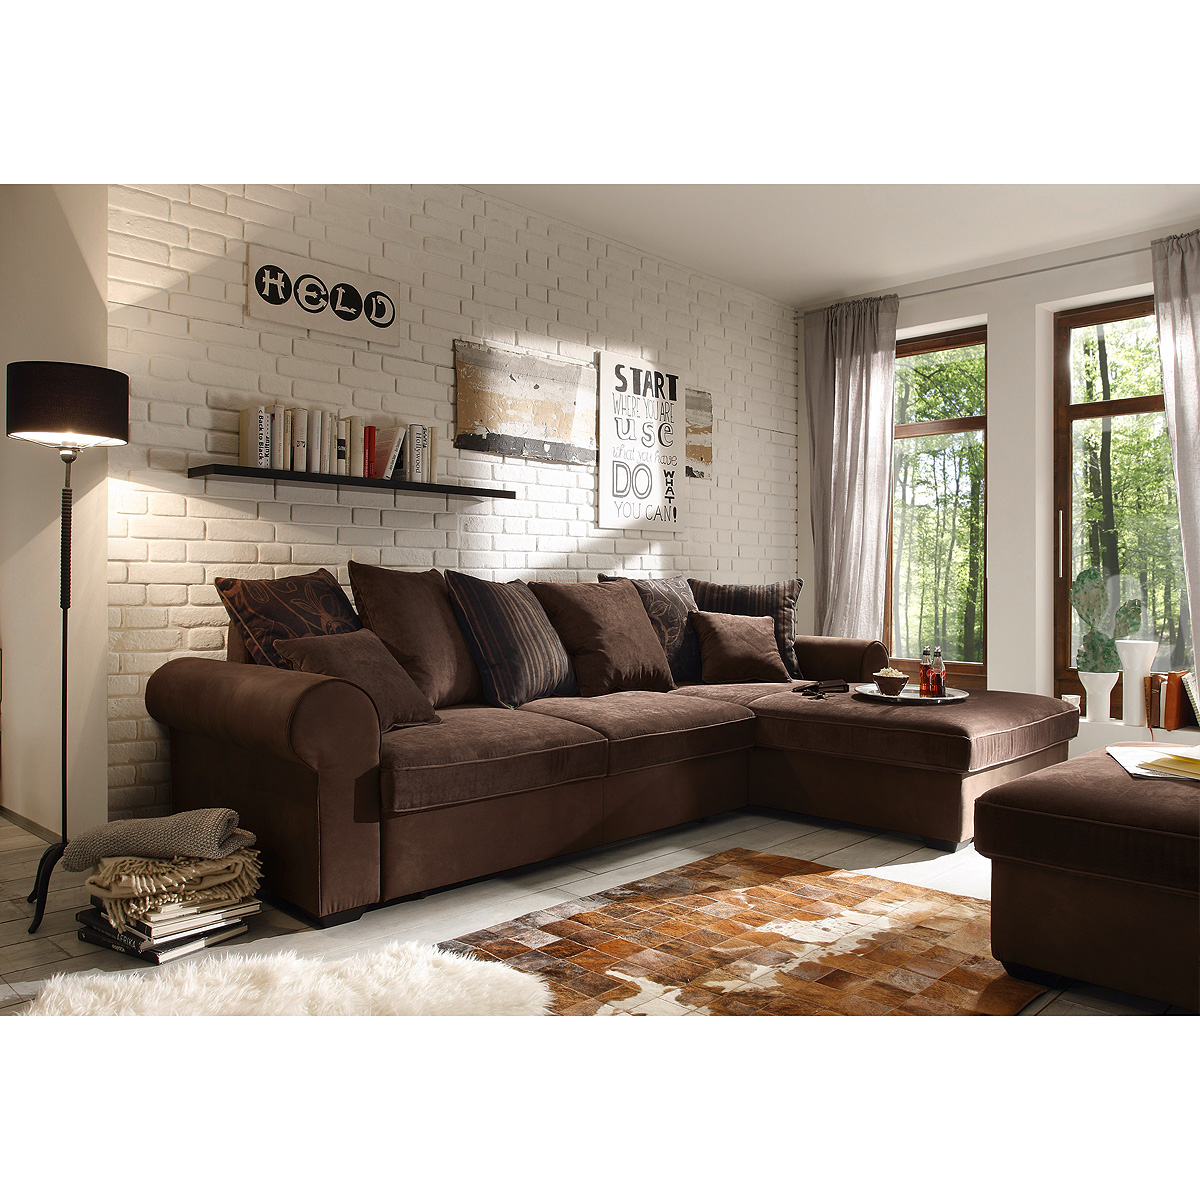 ecksofa canyon wohnlandschaft sofa in braun schwarzbraun. Black Bedroom Furniture Sets. Home Design Ideas